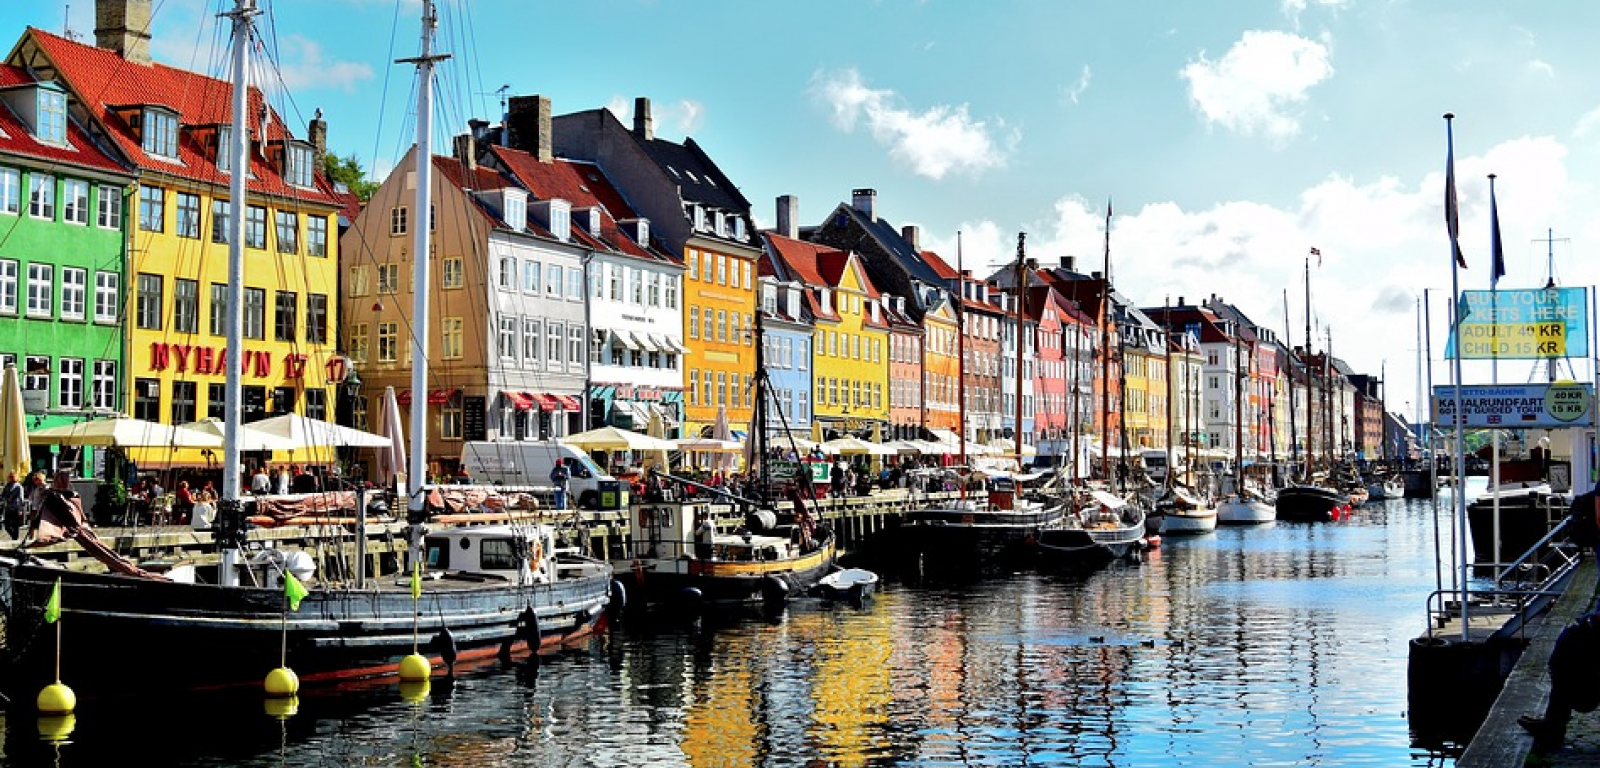 10 Countries Where You Can Live Like A King For Cheap (And 10 Of The Most Expensive)